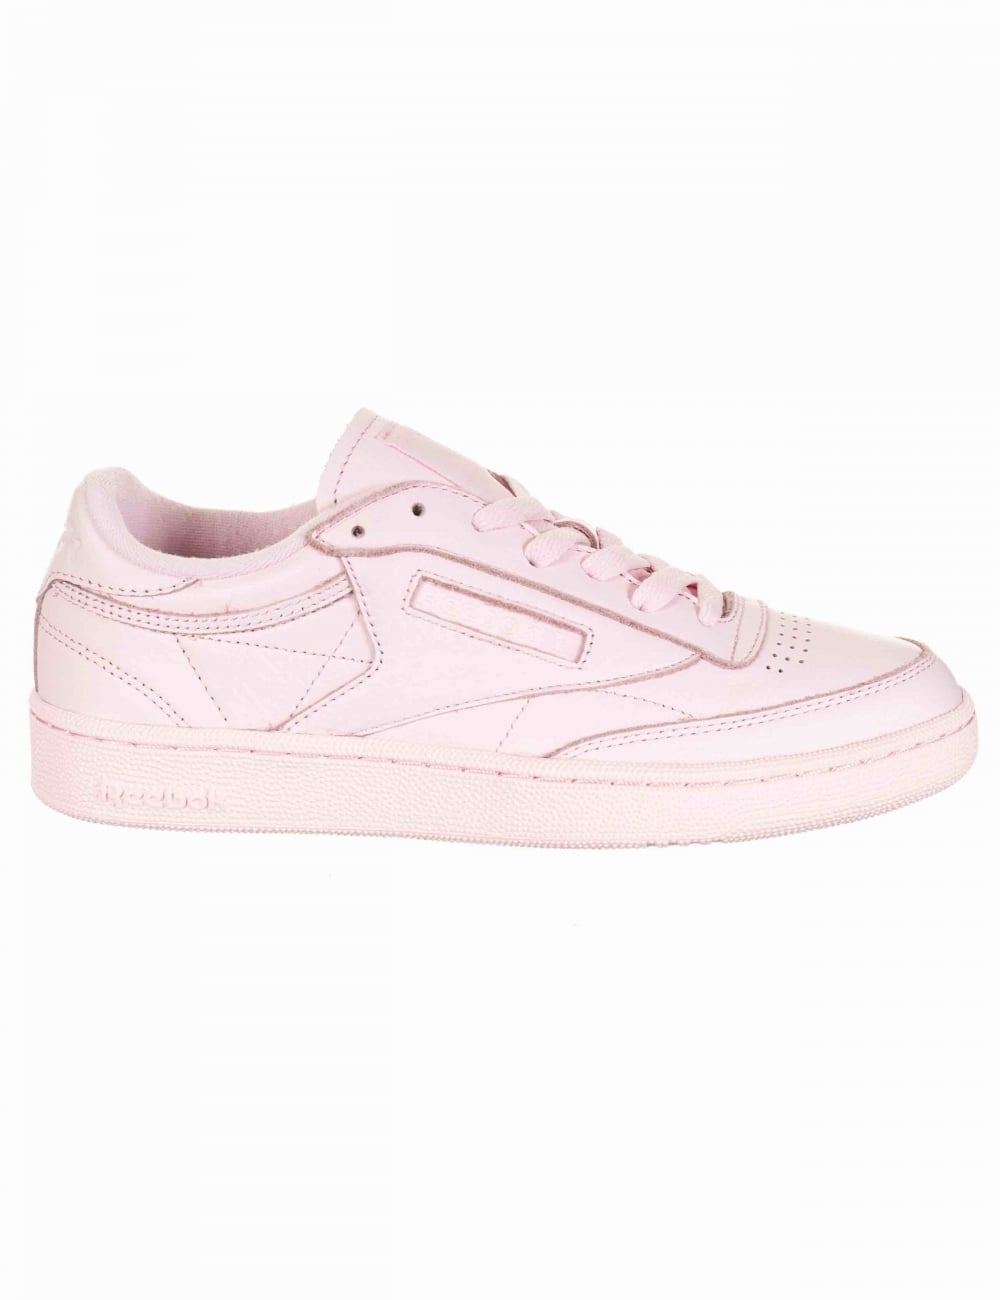 4615b3ef6e0d Reebok Club C 85 ELM Shoes - Porcelain Pink (Elemental Pack ...